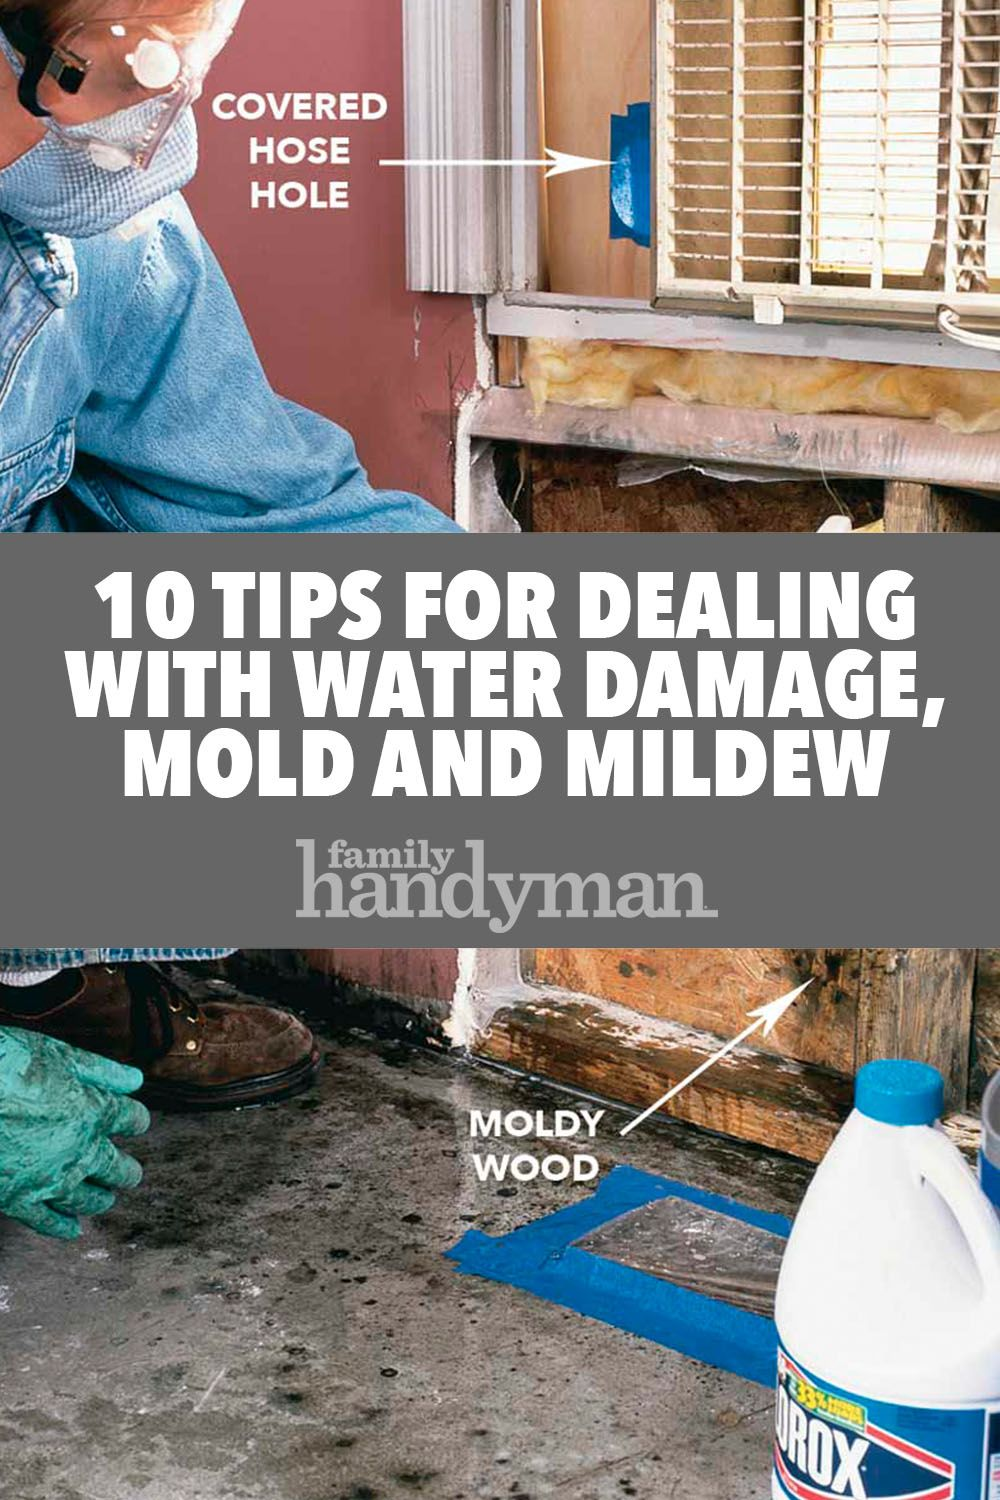 10 tips for dealing with water damage, mold and mildew | diy